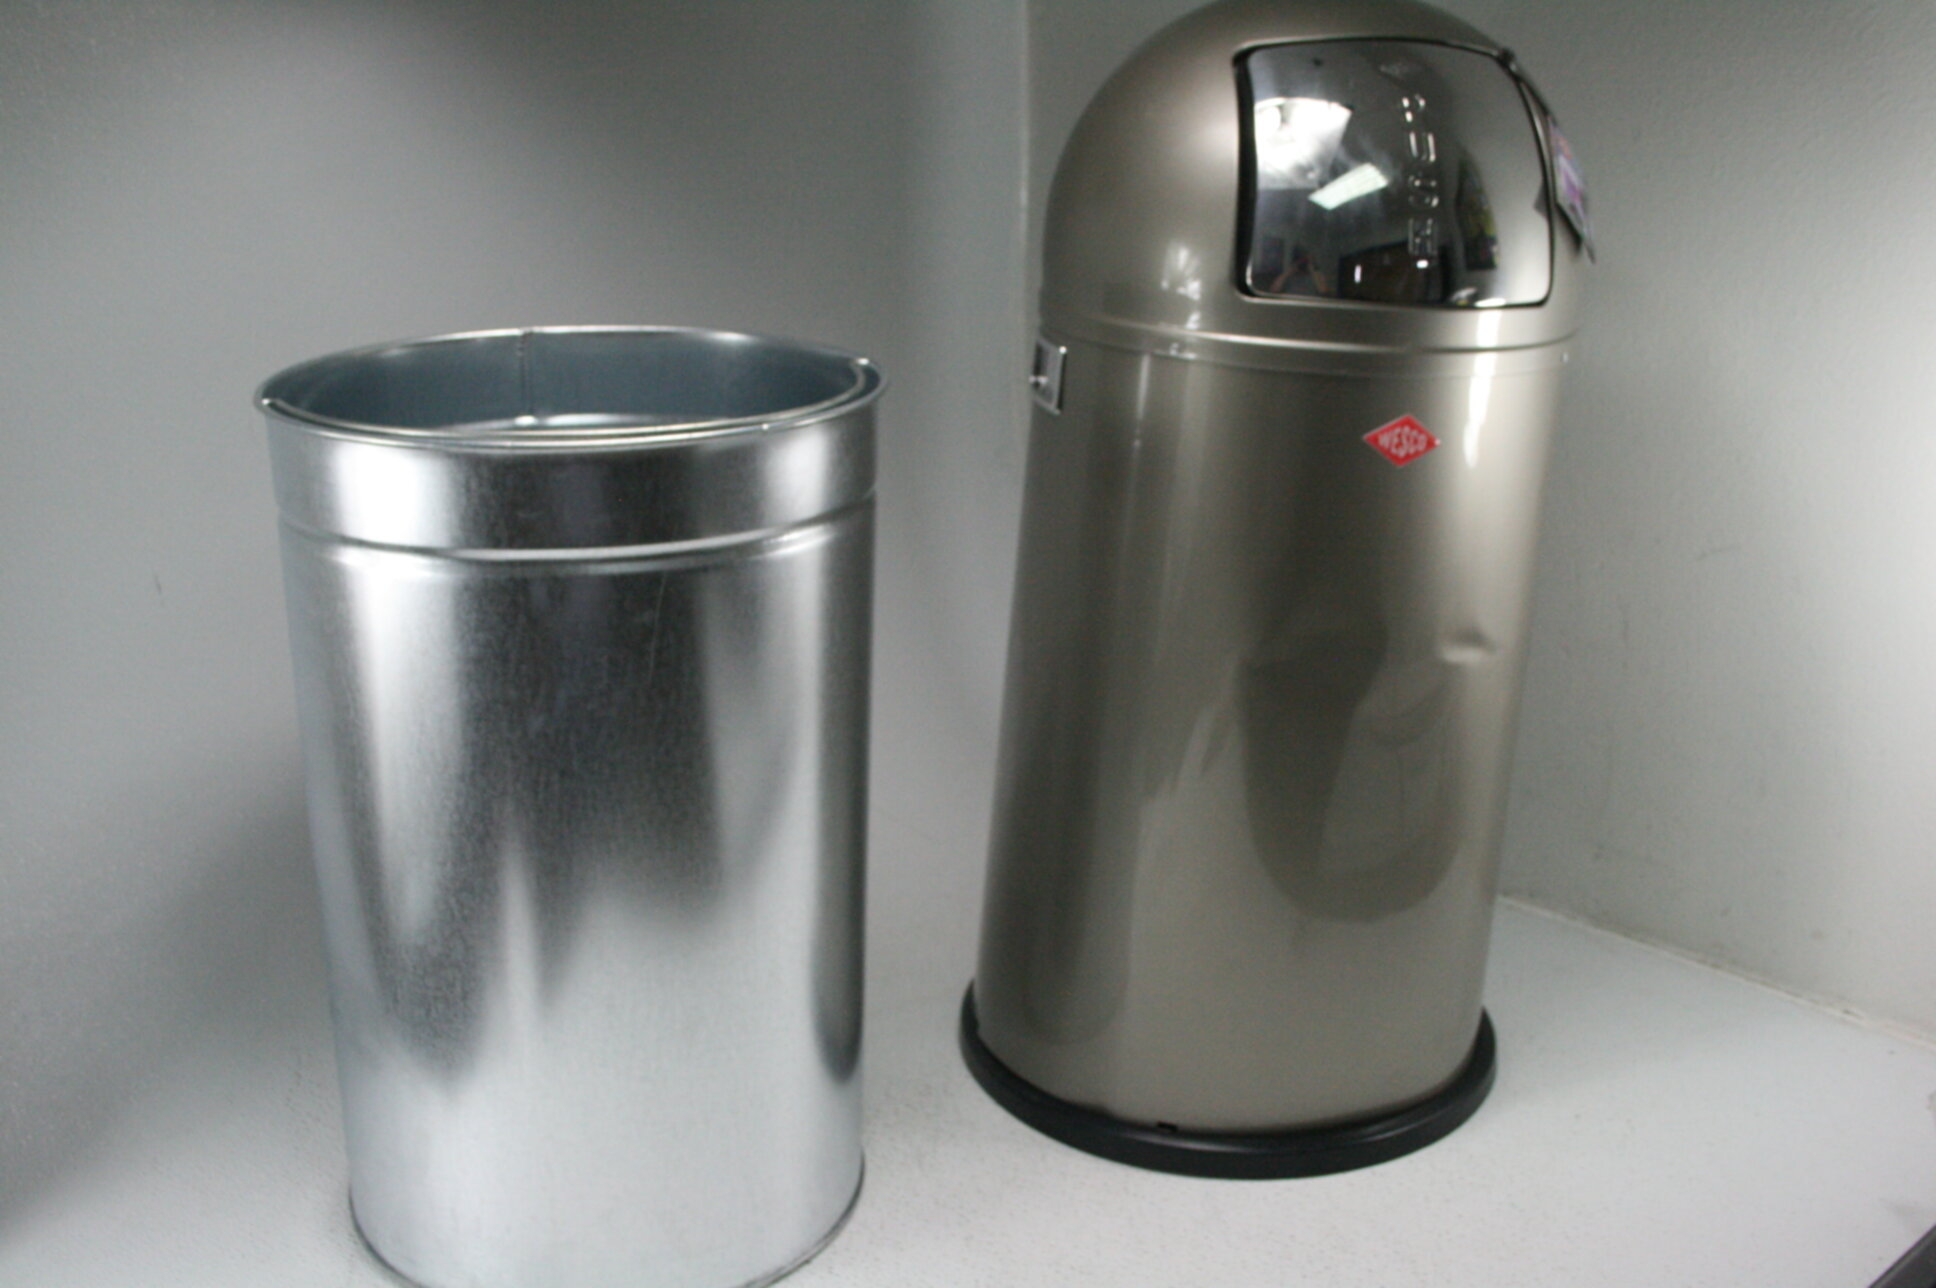 Wesco Pushboy Zilver.Details About Wesco Pushboy German Push Door Trash Can Powder Coated Steel 13 2 Gallon Silver